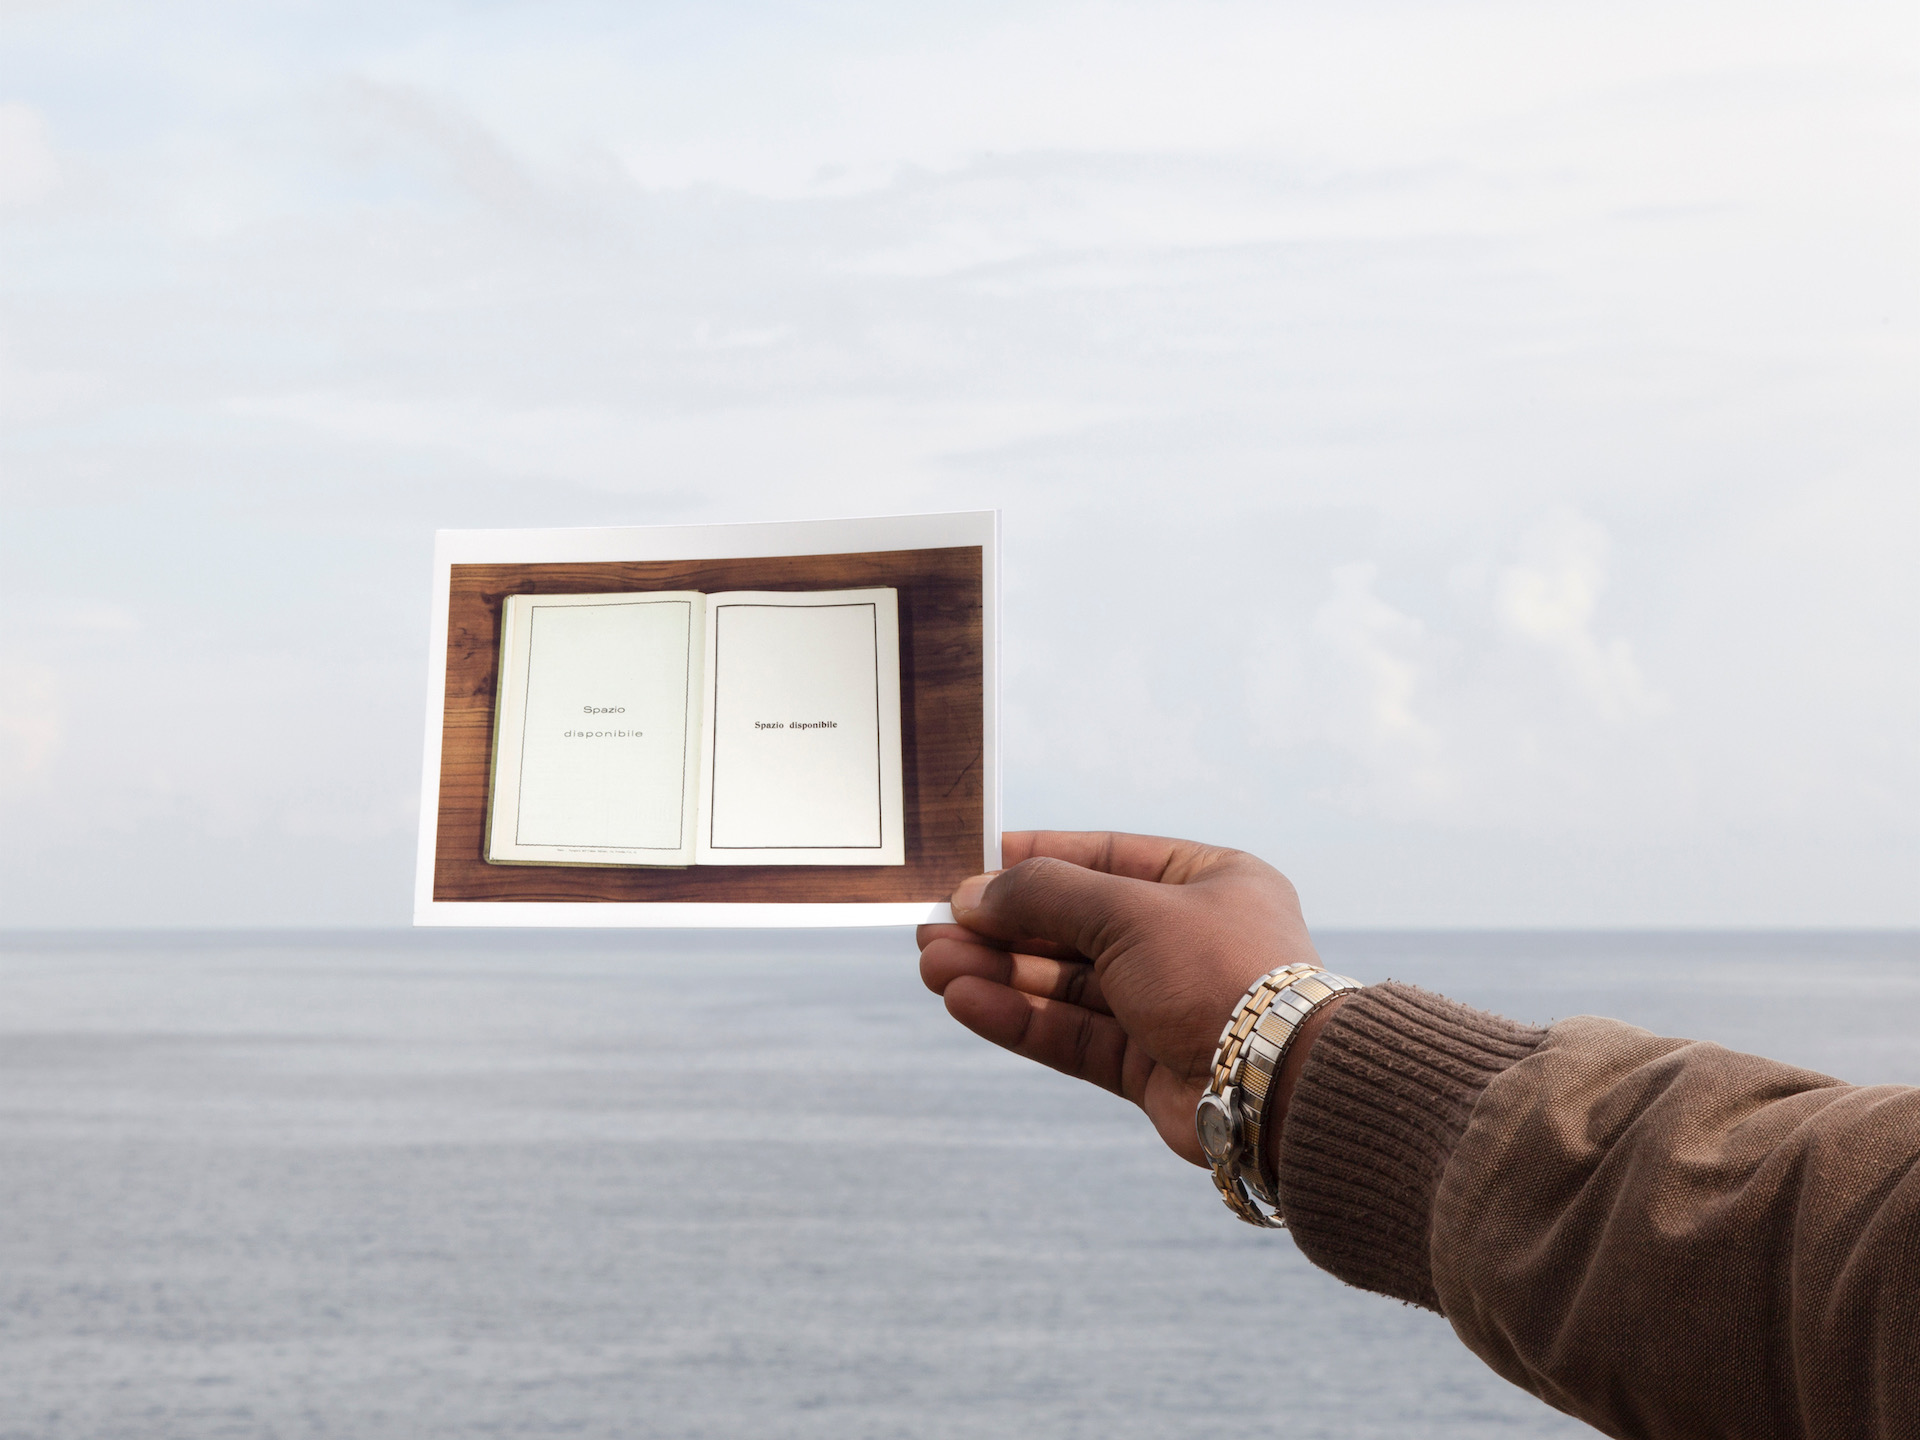 A hand with darker skin holds up a photograph of an open book against a backdrop of open water and grey skies.